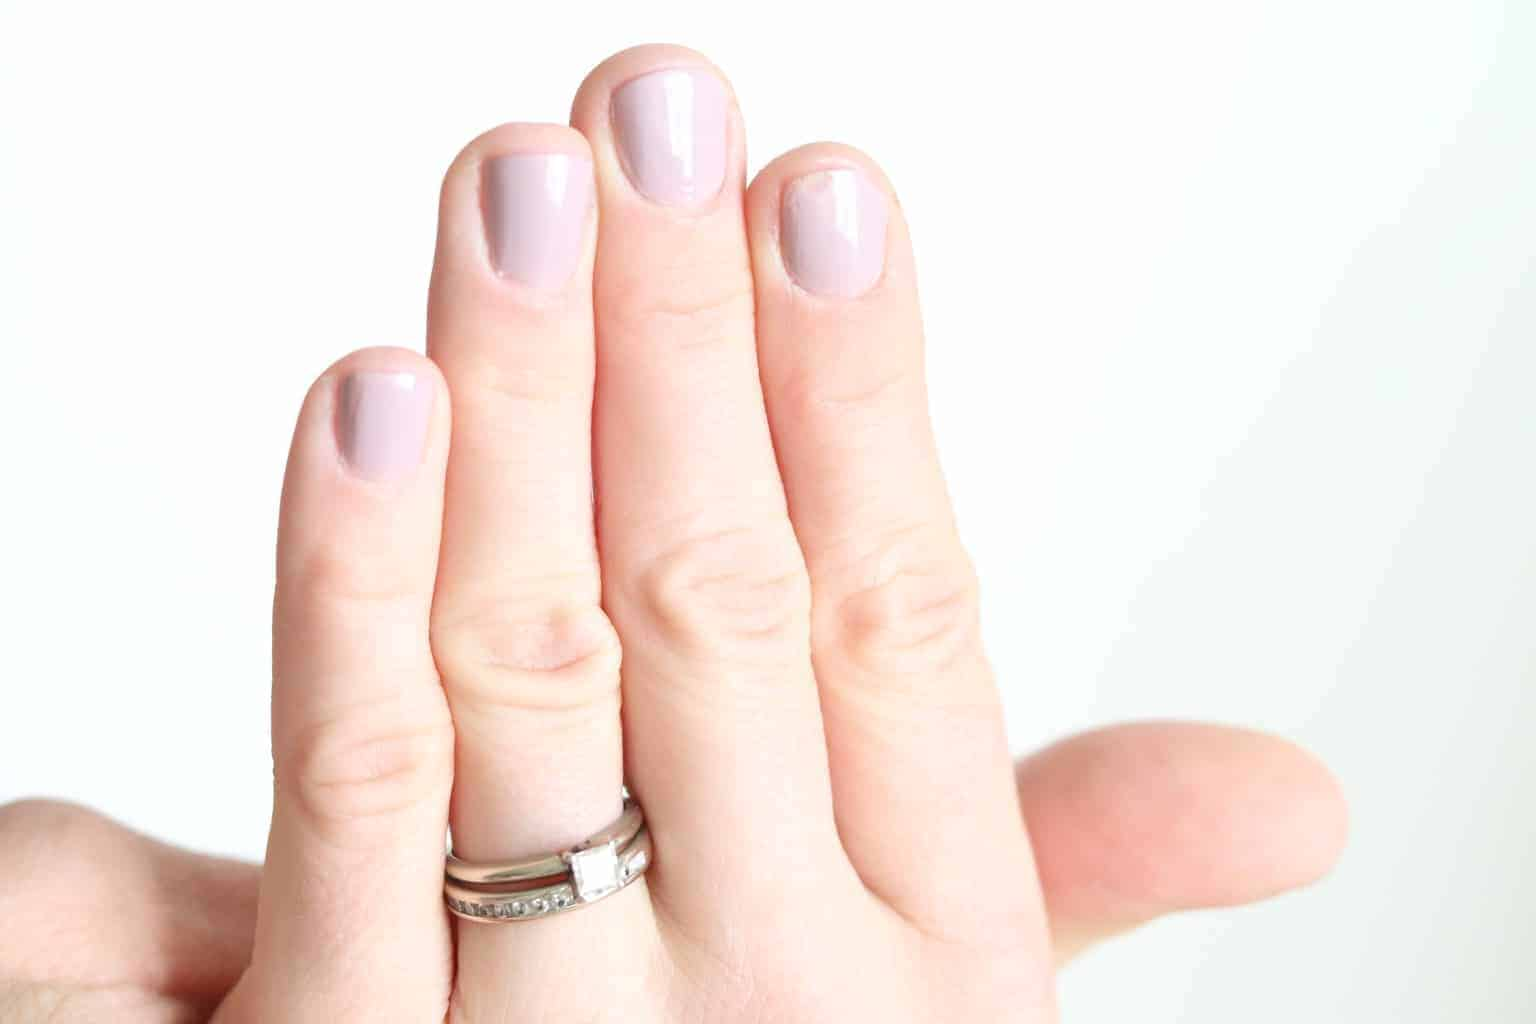 women hand with light pink nails